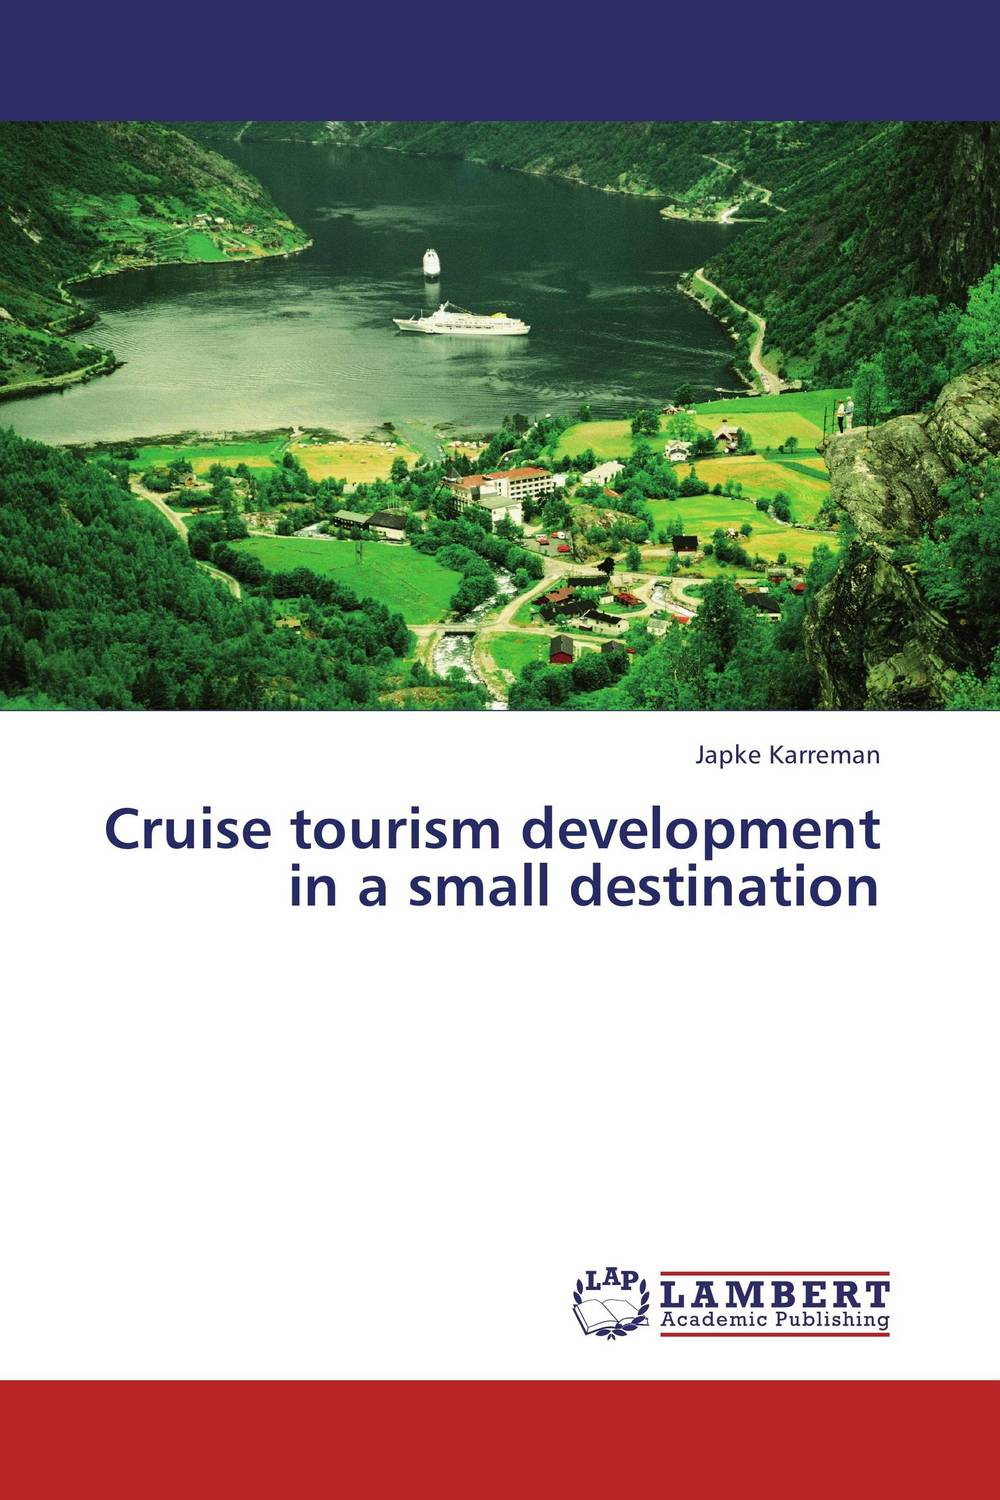 Cruise tourism development in a small destination